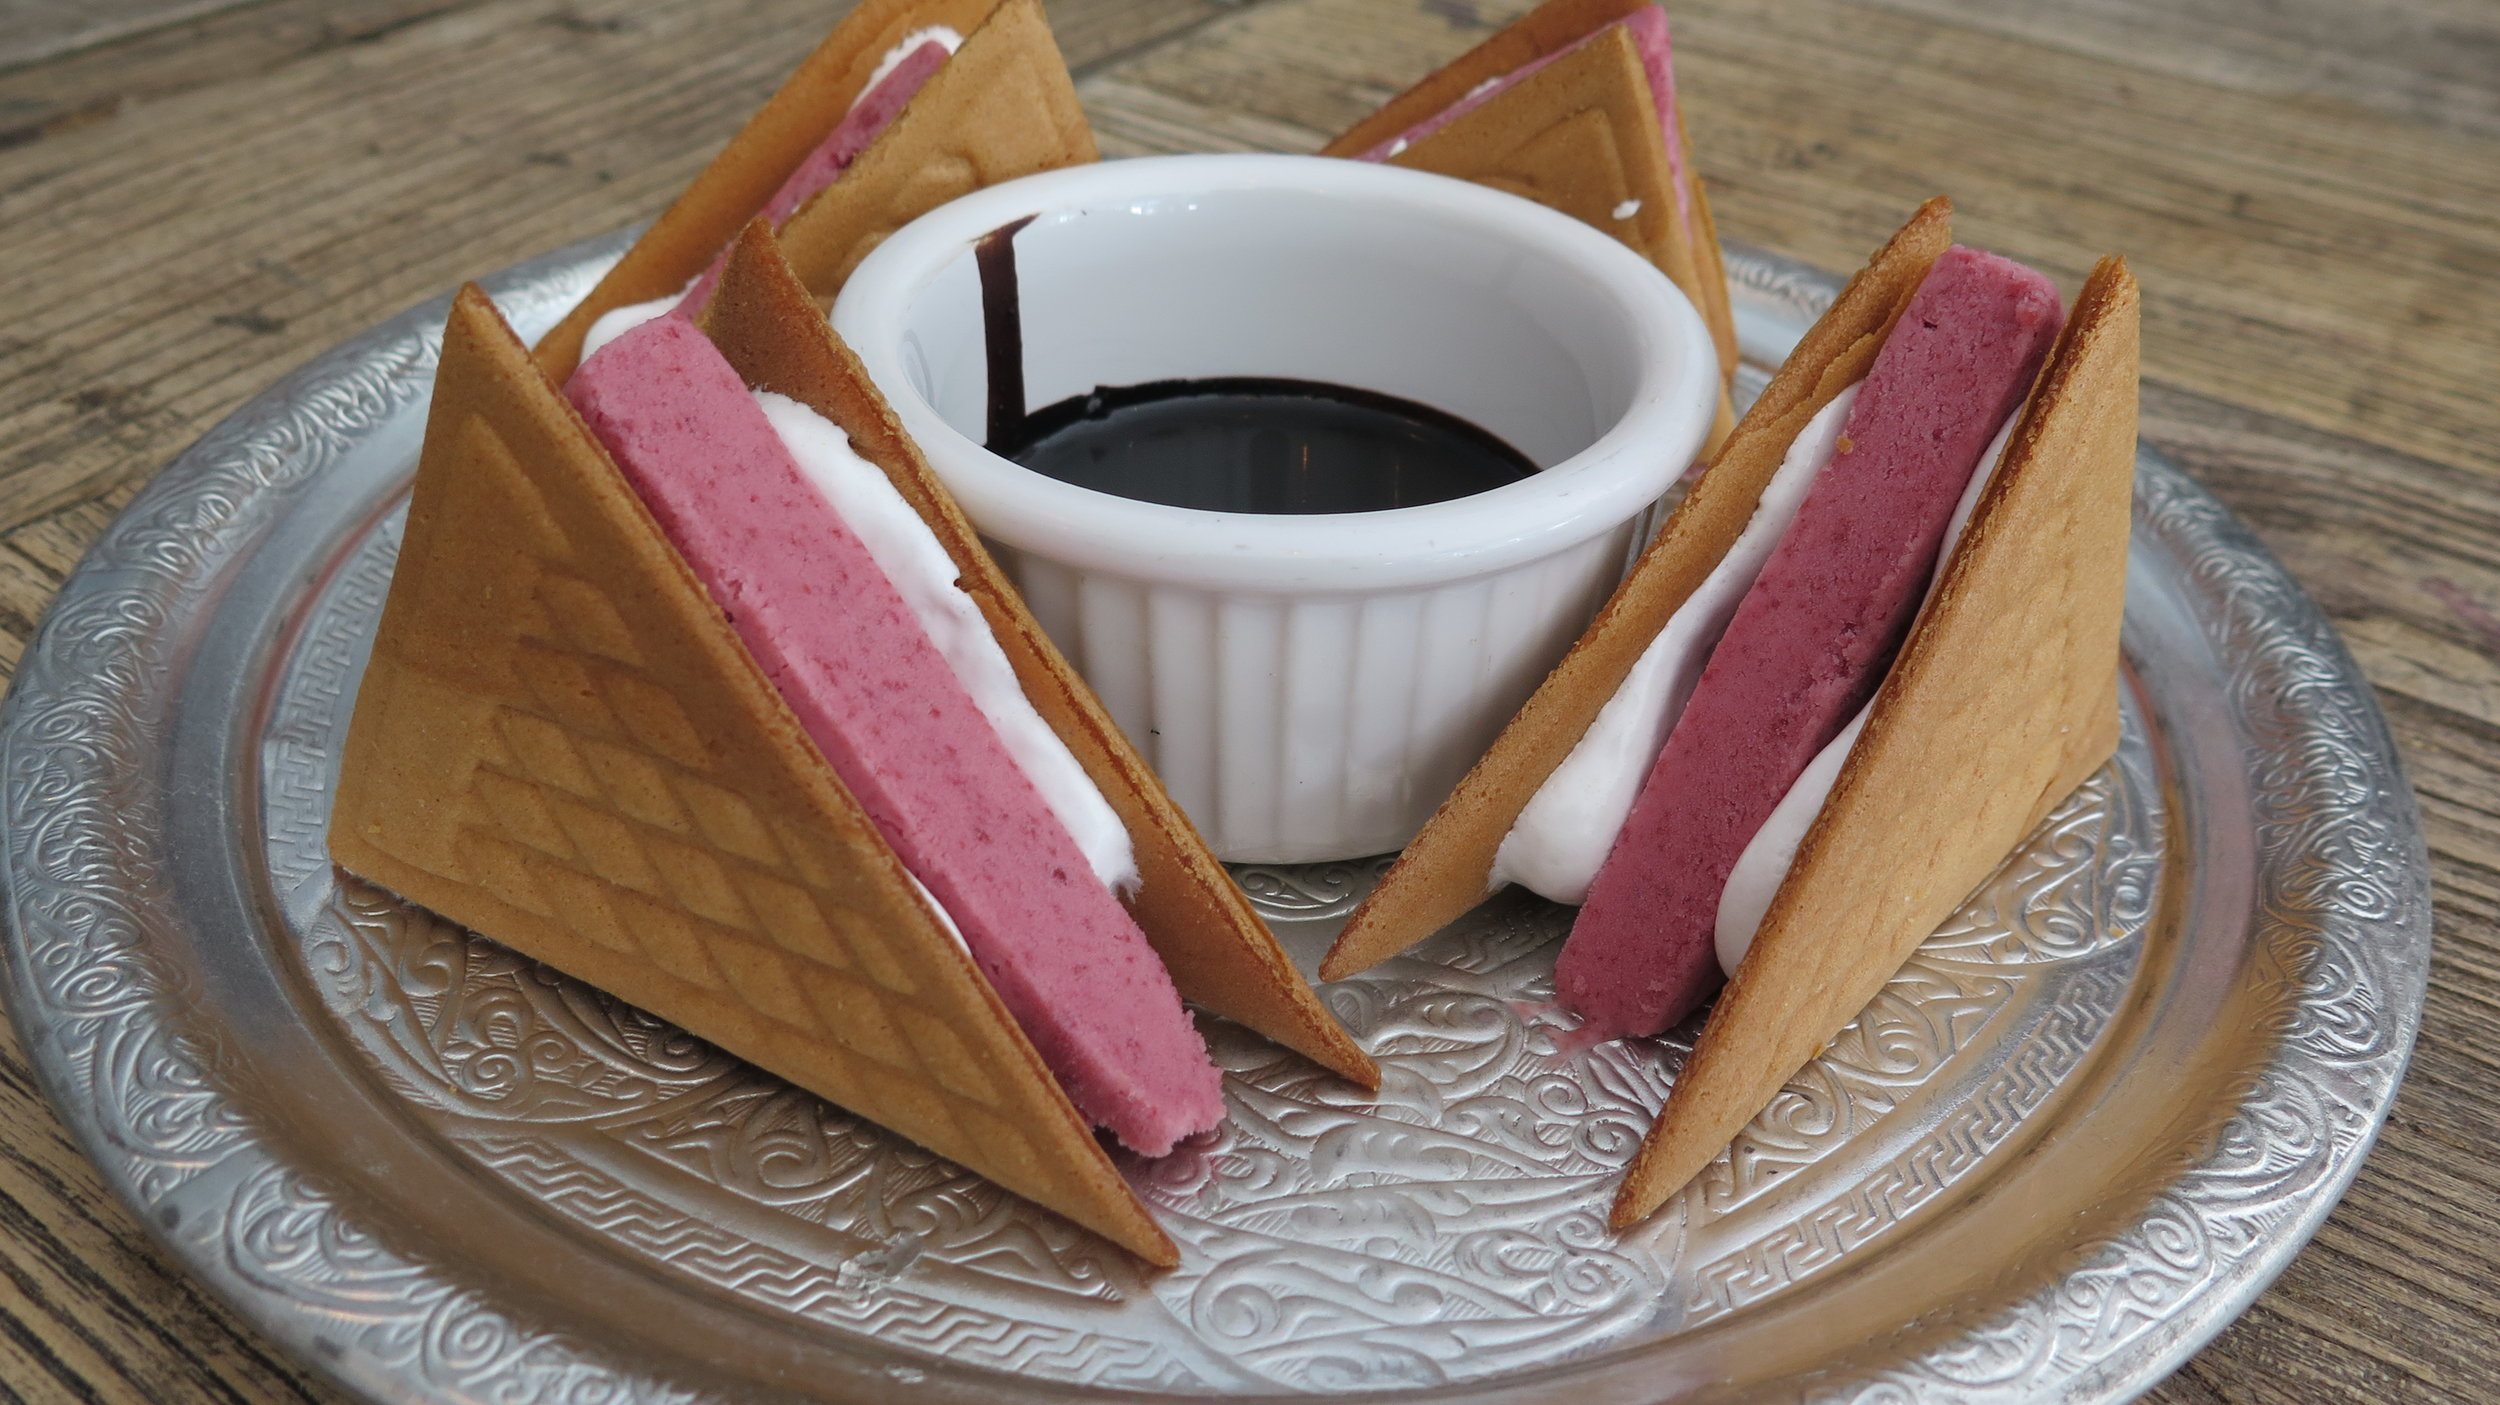 Turkish Ice Cream Sandwiches with Urfa Chocolate Sauce